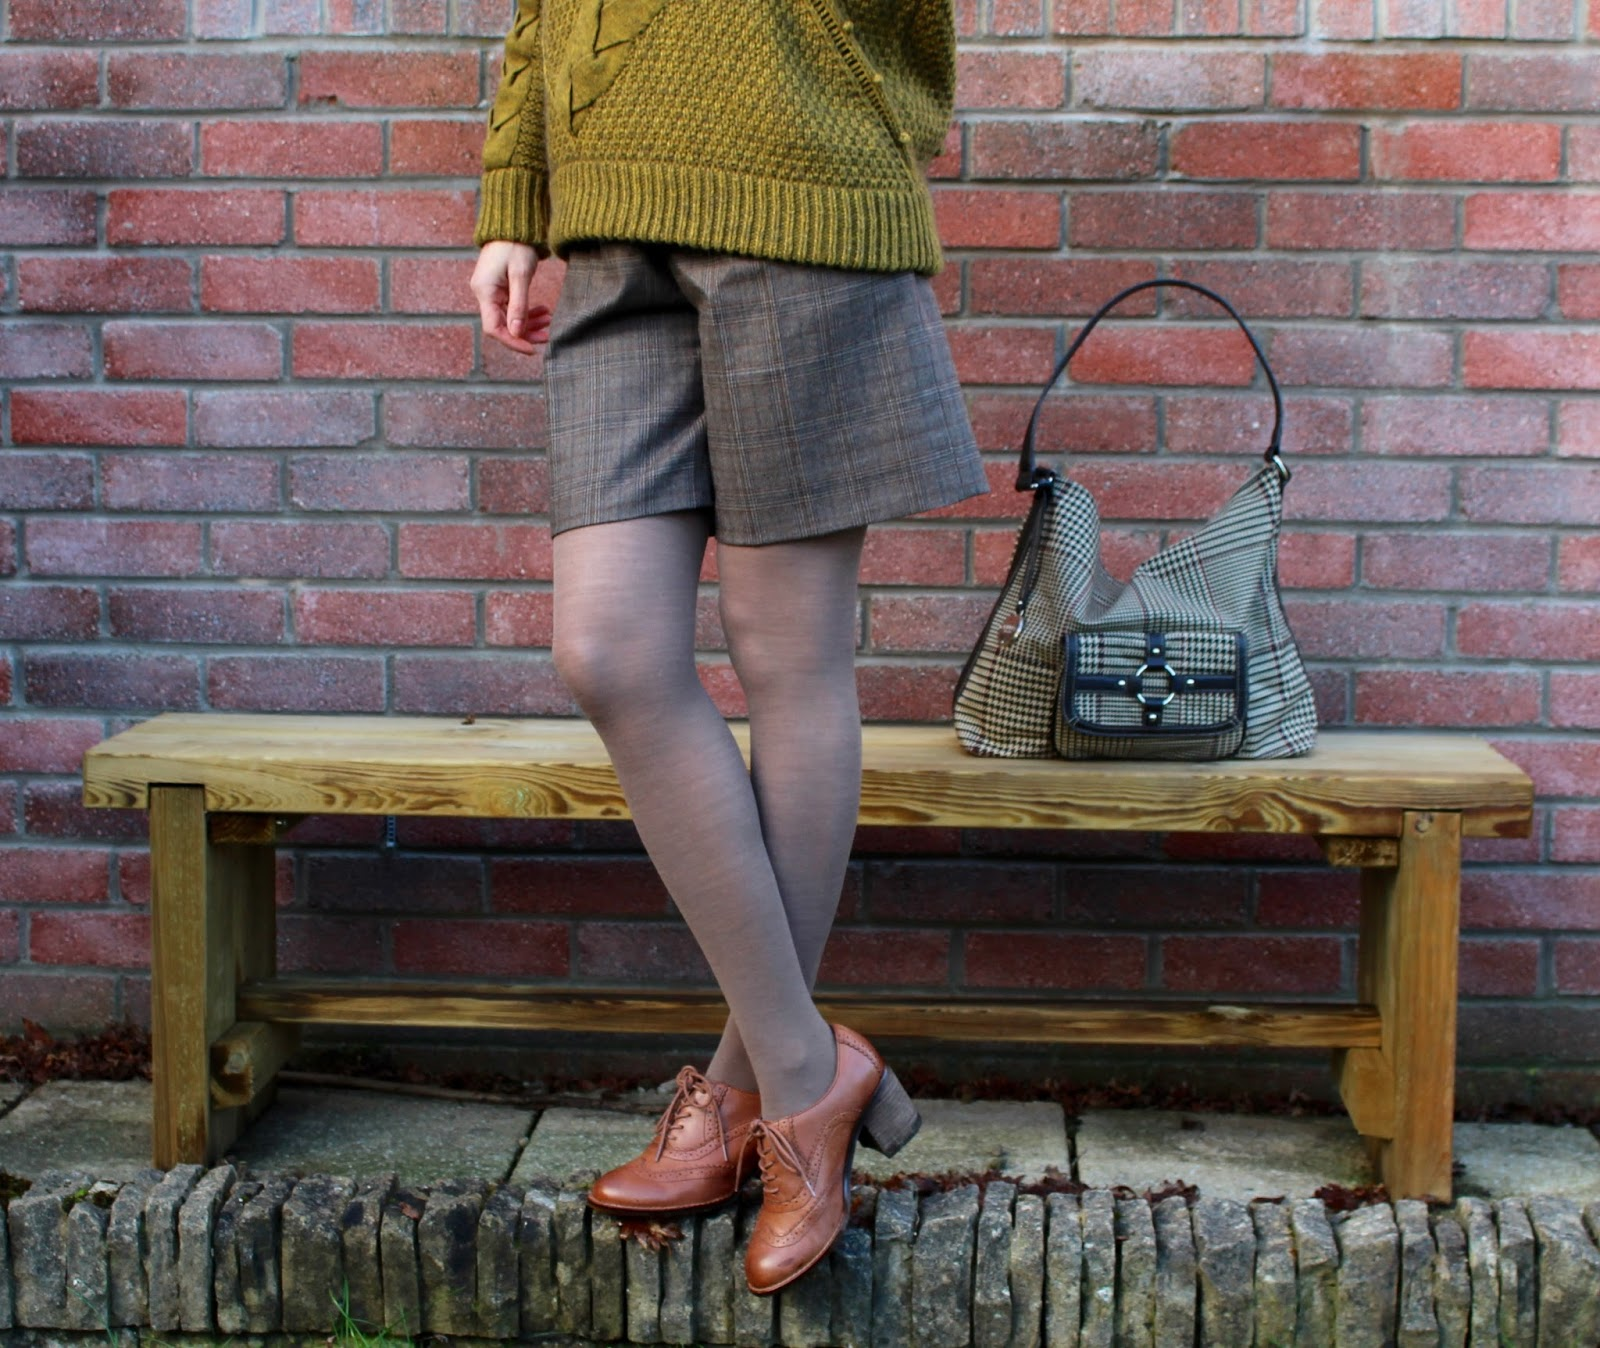 Wearing Tailored shorts in Winter | Fake Fabulous